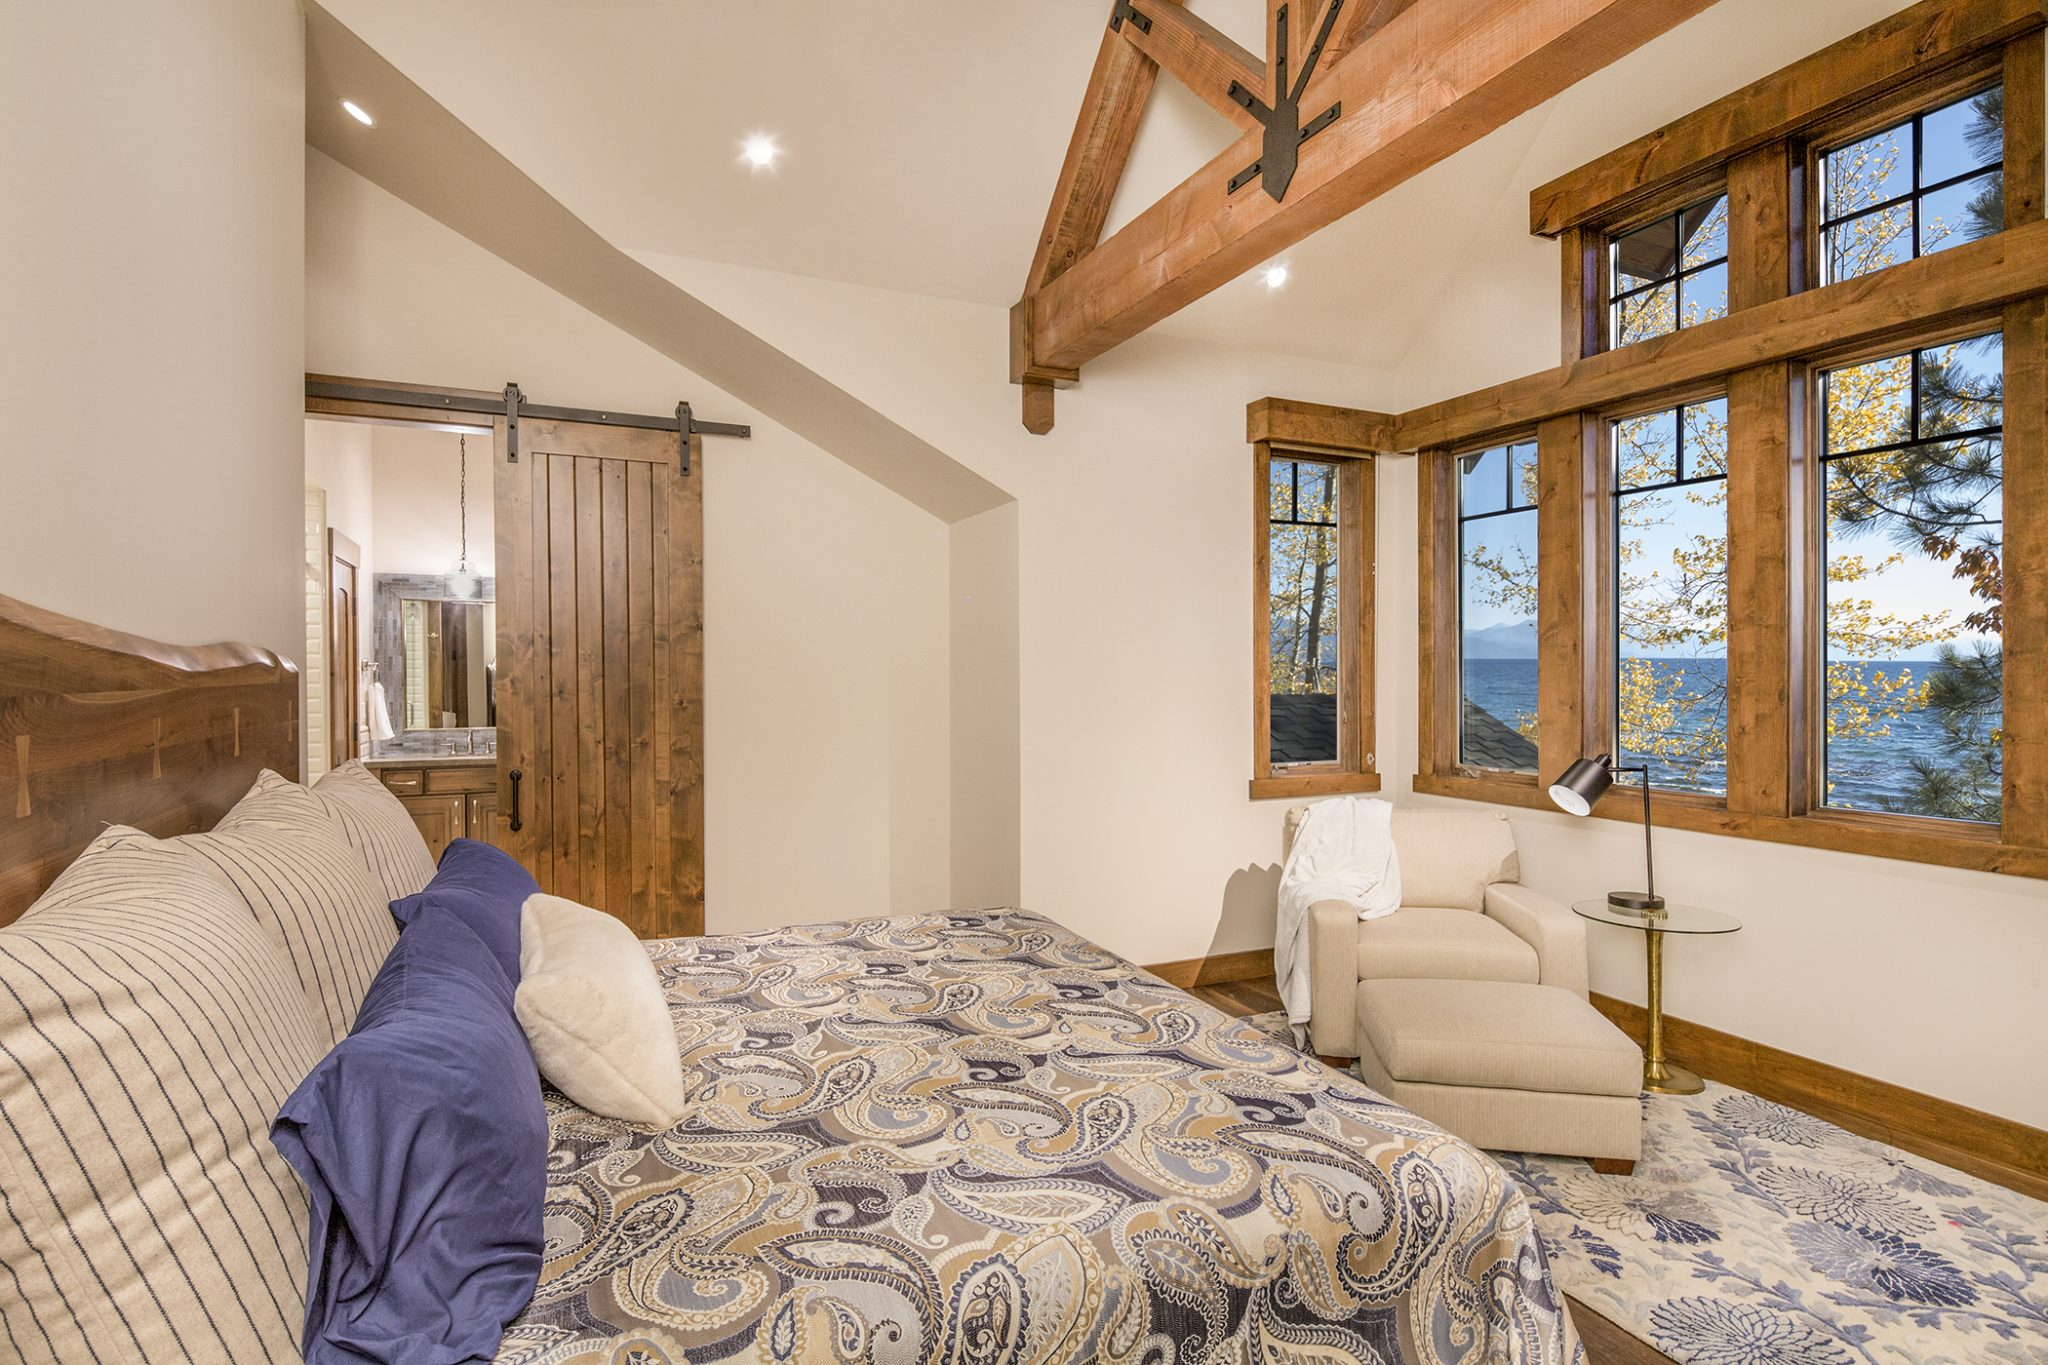 Brockway on the Lake, Lake Tahoe, paisley duvet, barn door and exposed beams by Aspen Leaf Interiors, Inc.